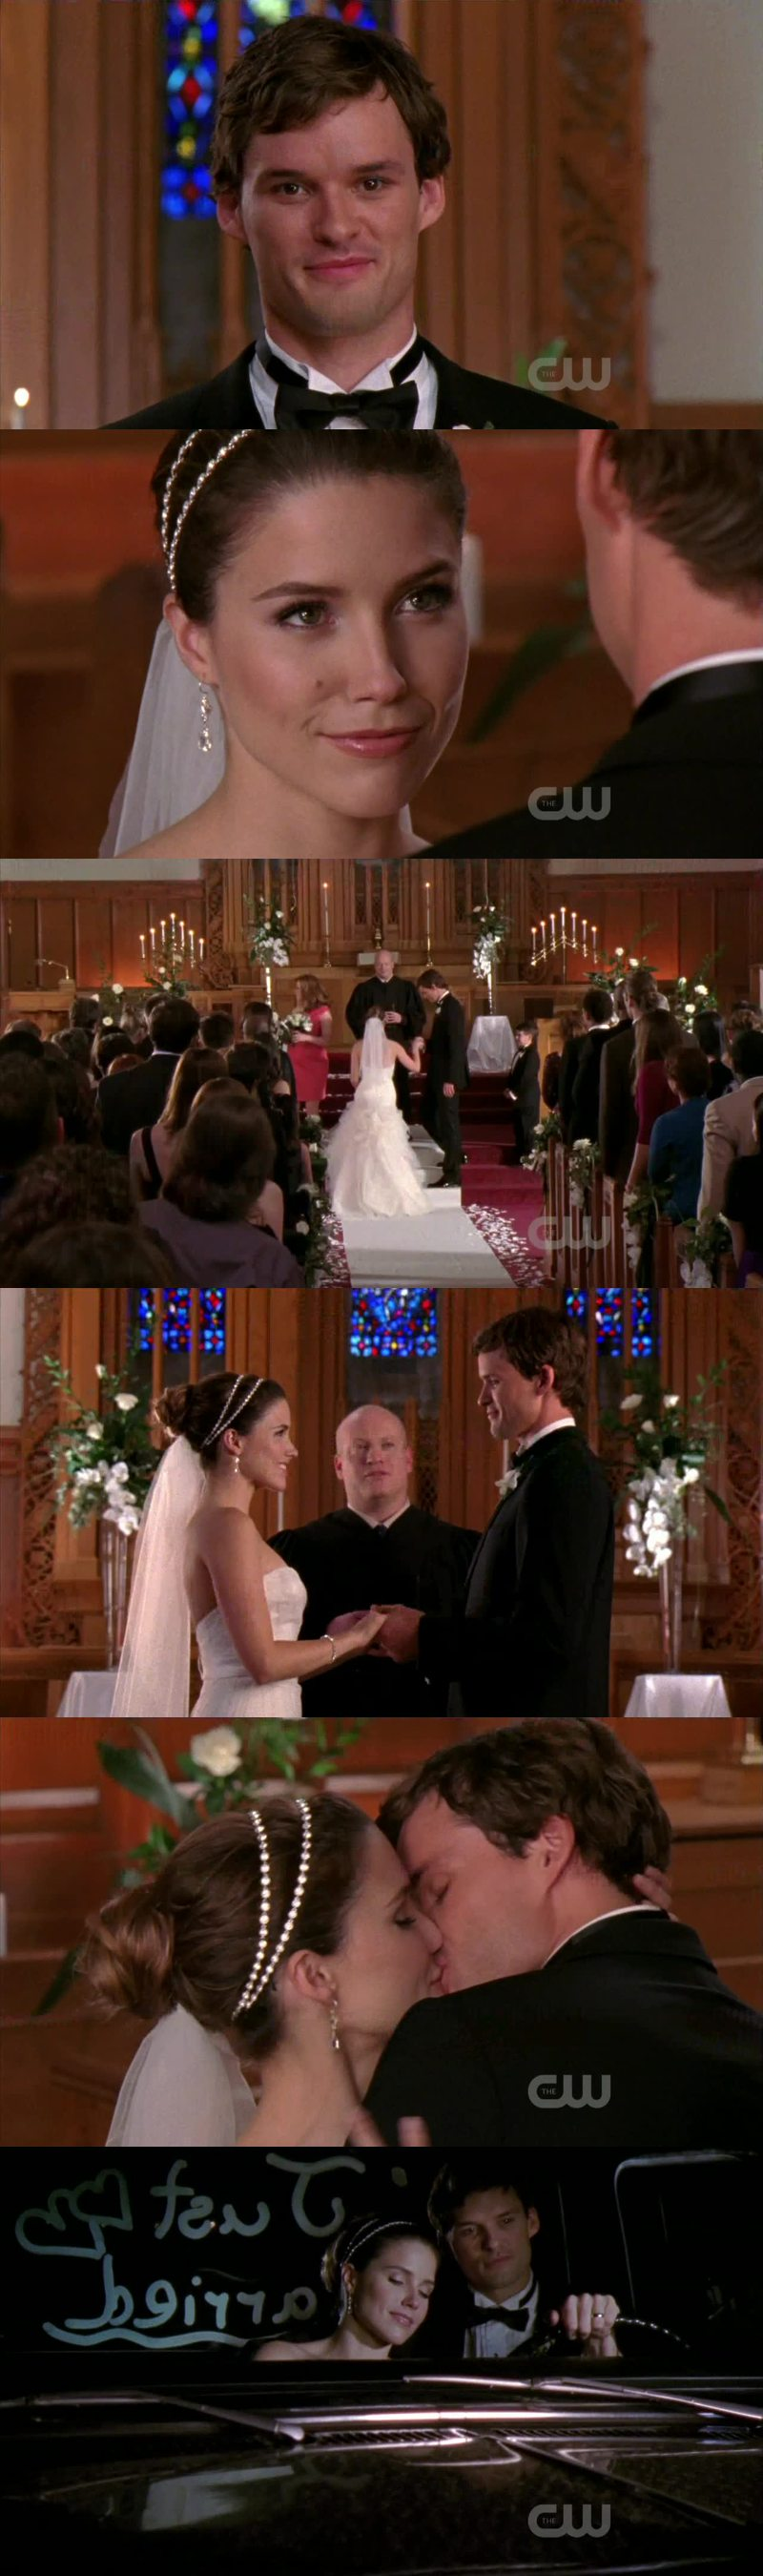 what a beautiful couple and marriage 😍